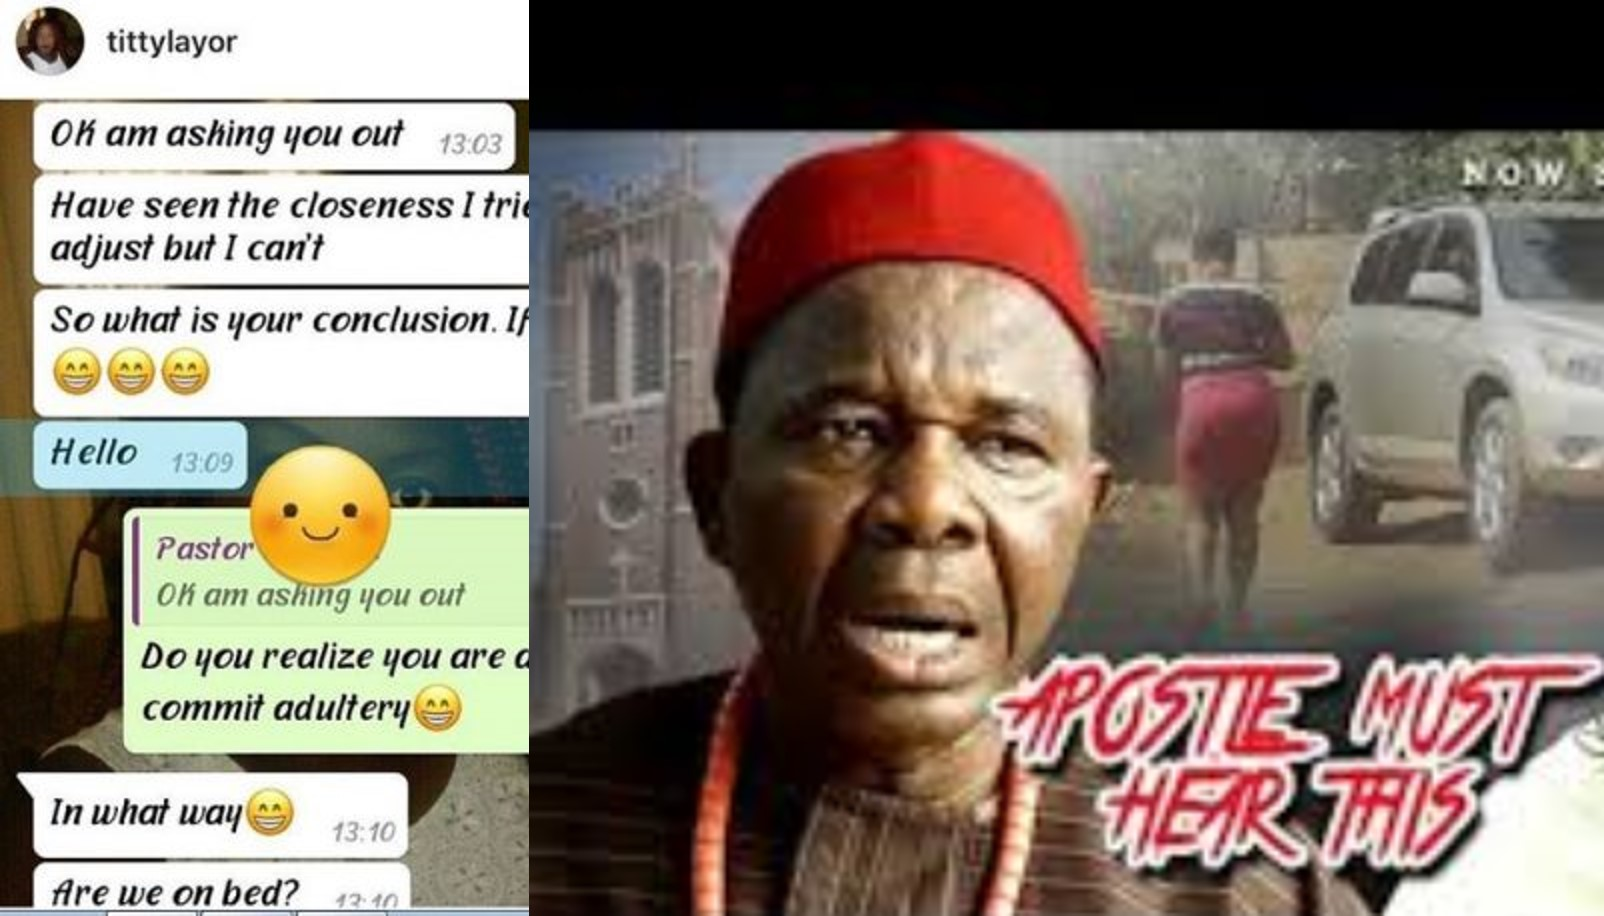 Apostle must hear of this – Married lady shares screenshots of chats with her married pastor who is asking her out